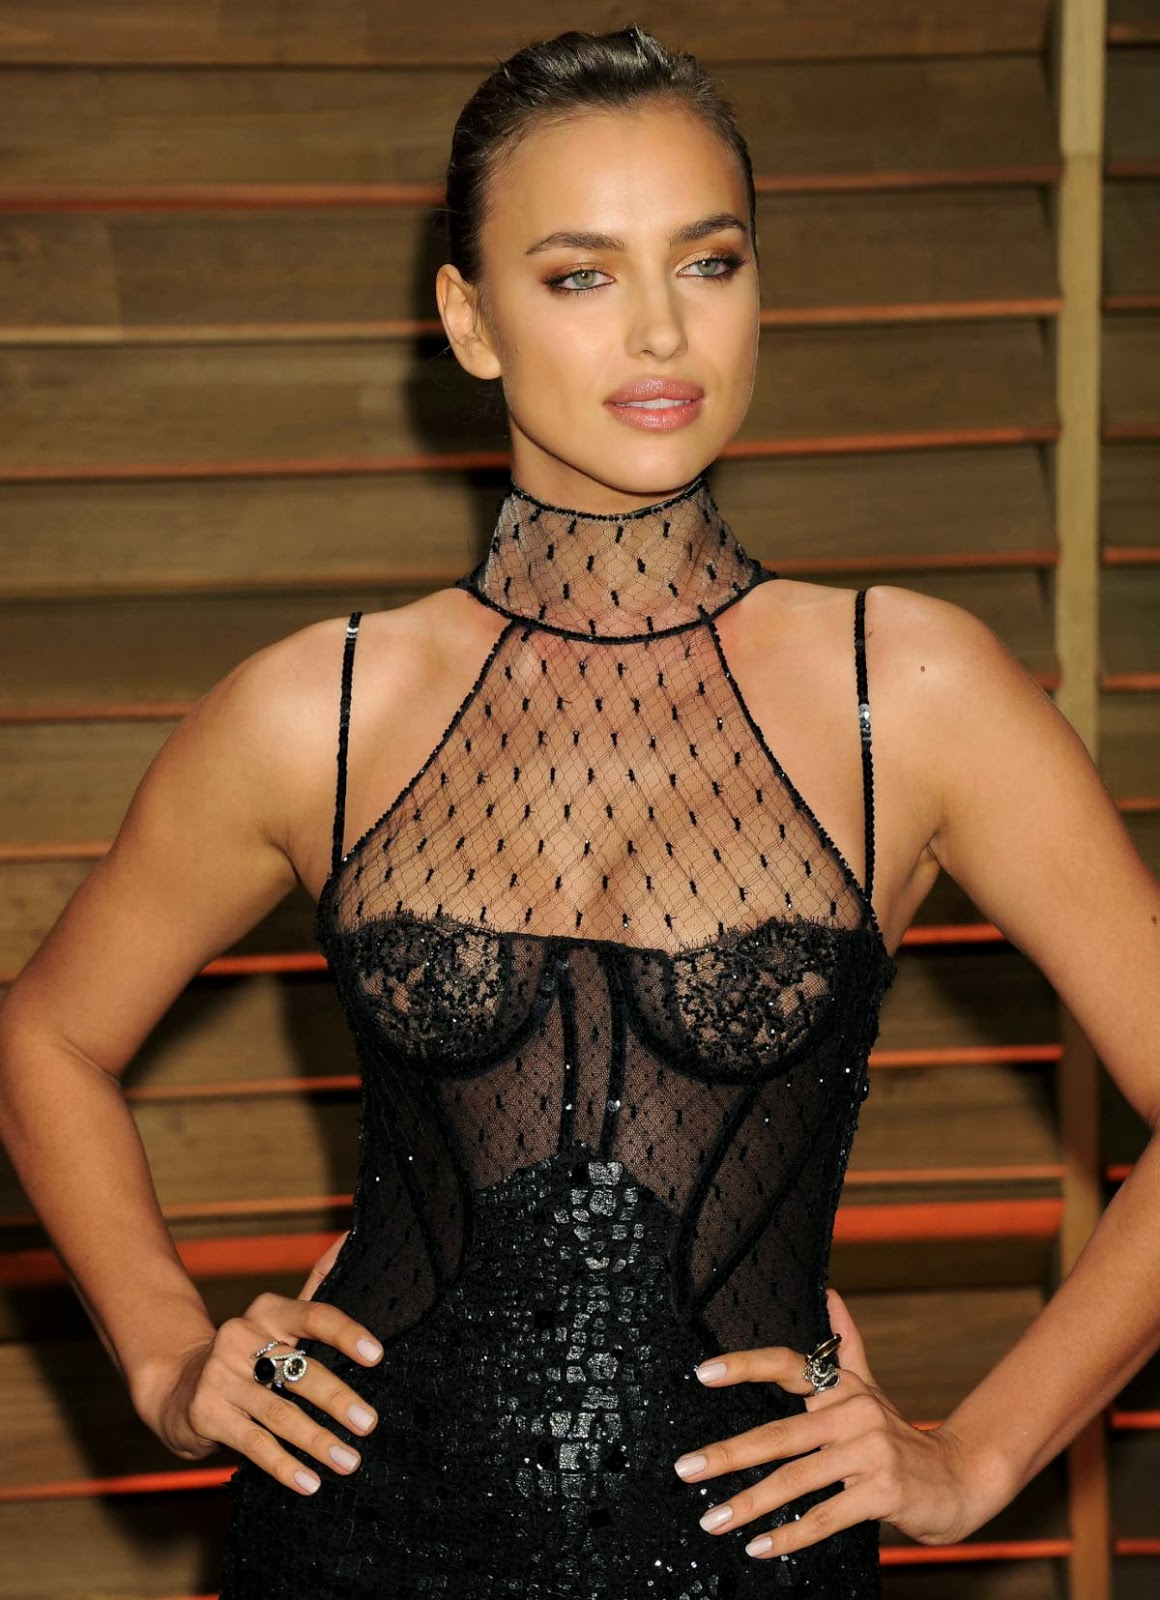 Hot celebrity Irina Shayk sexy stunning beauty